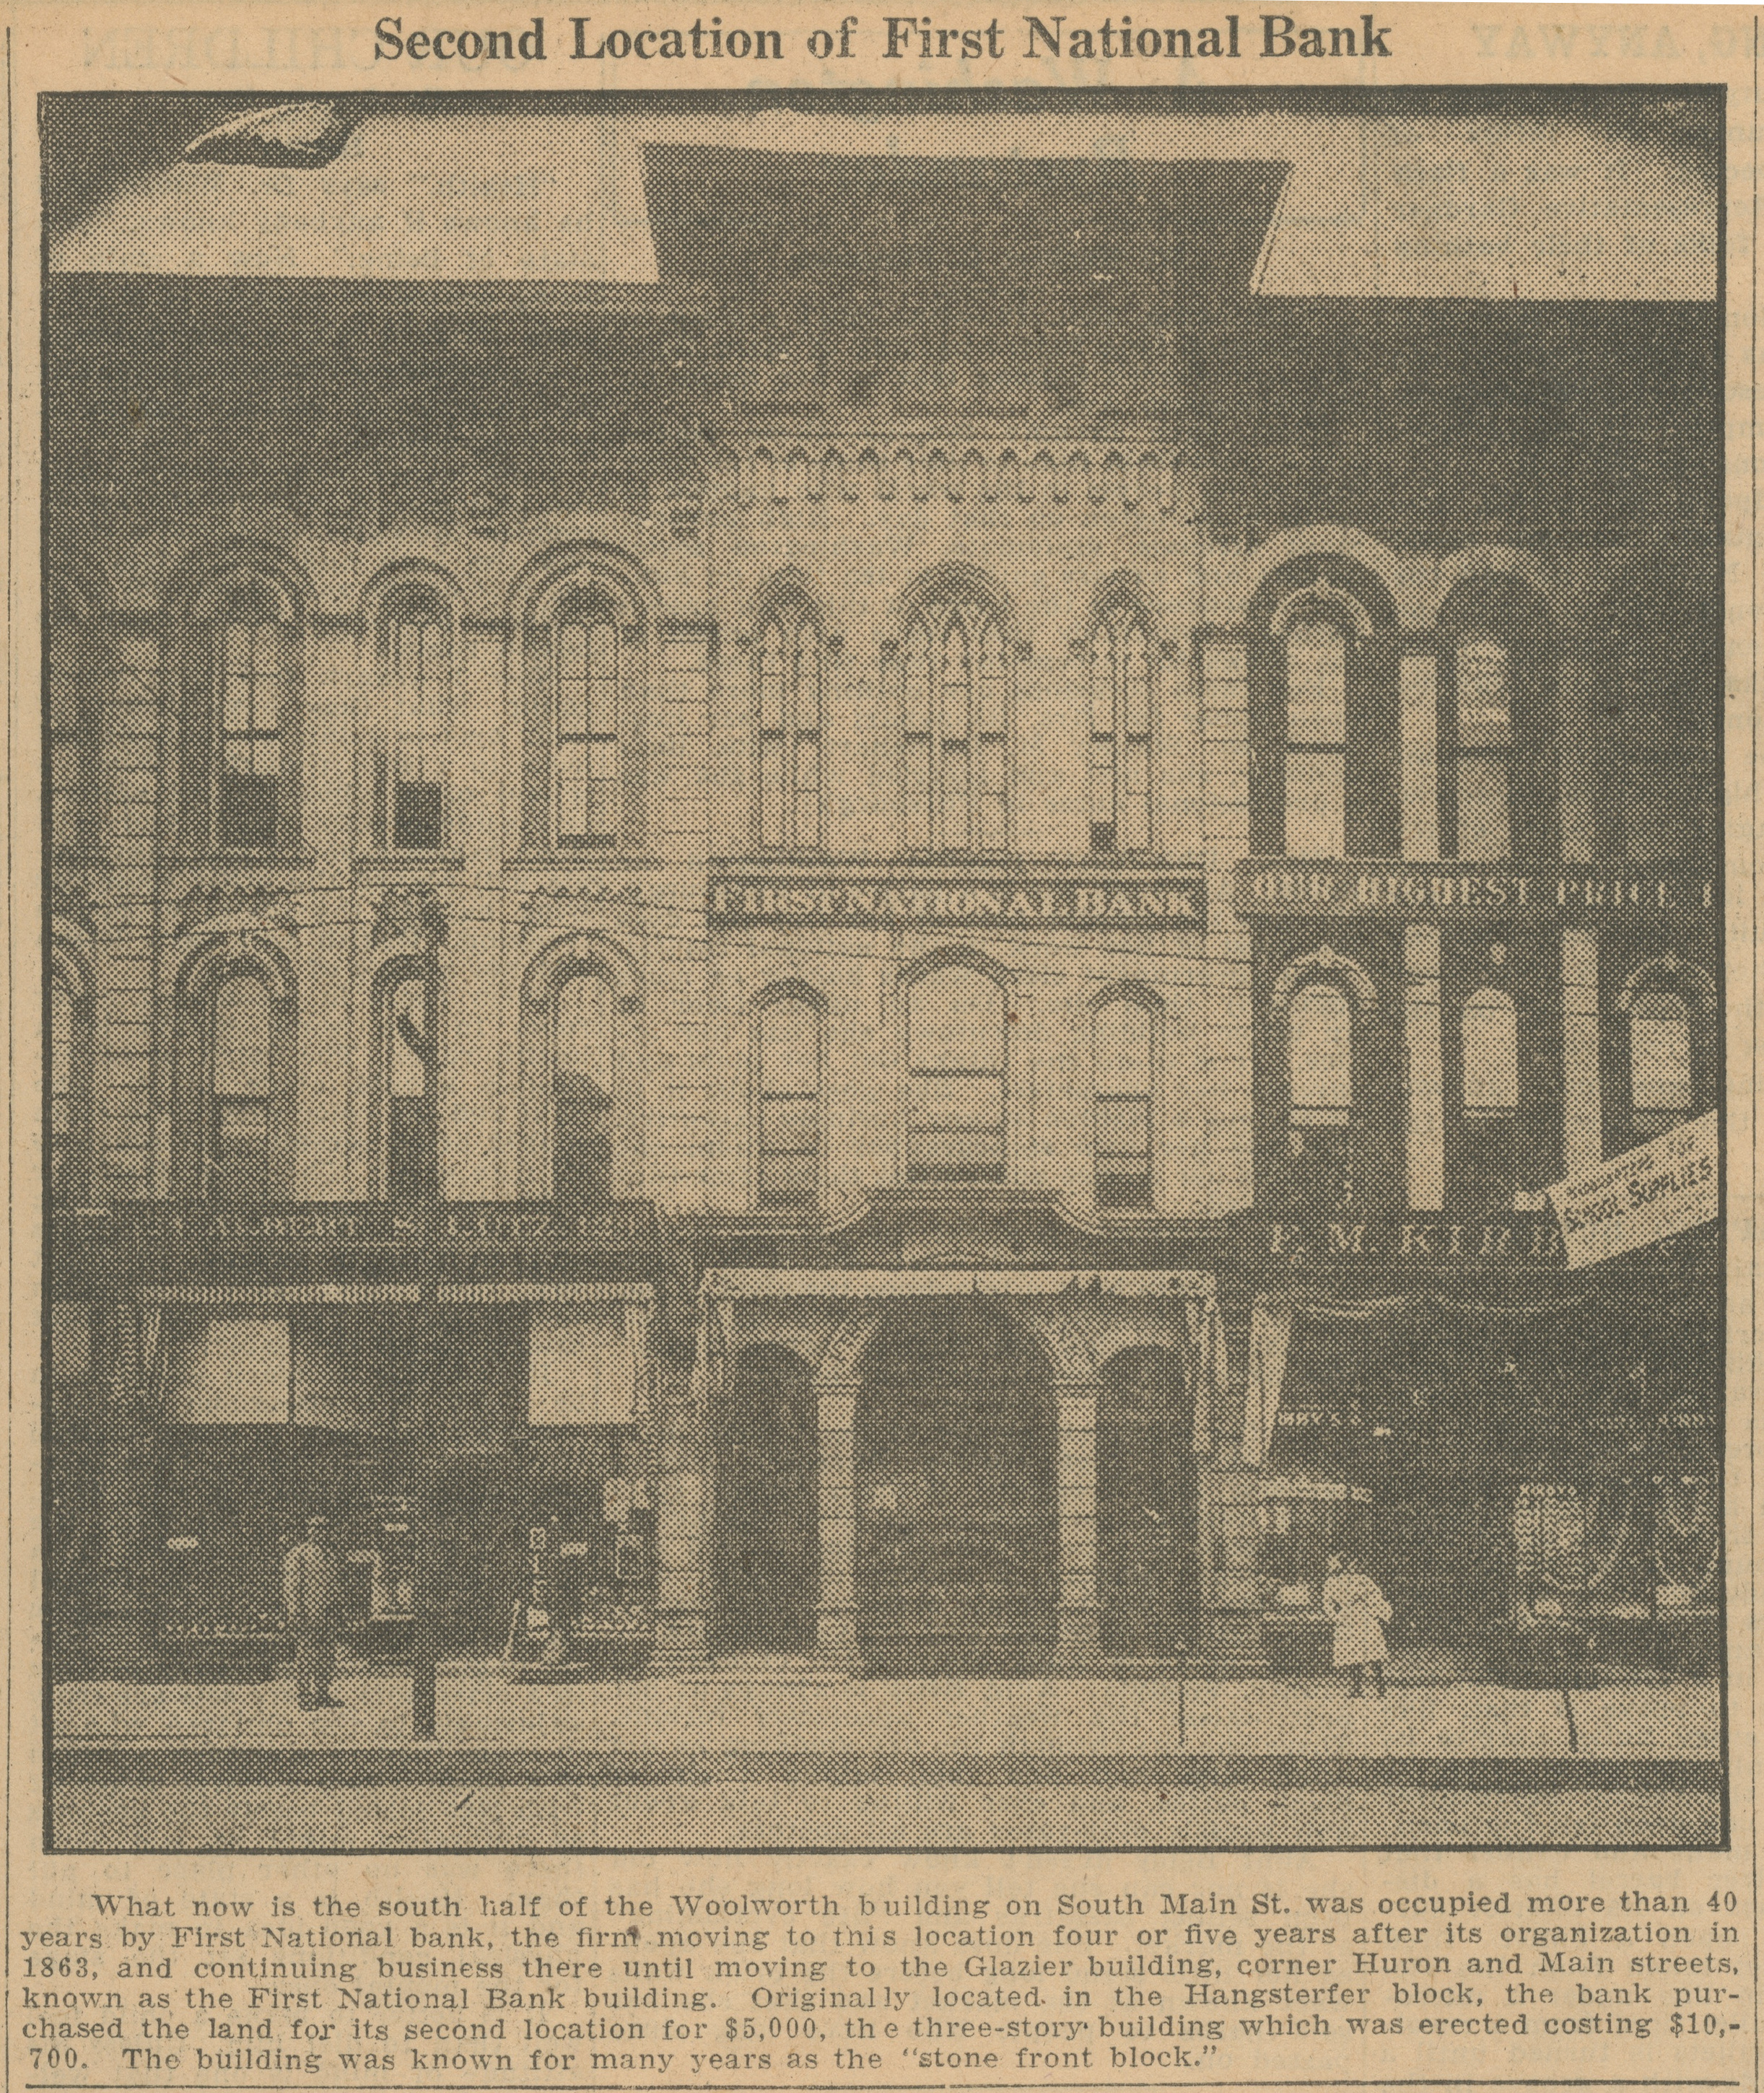 Second Location of First National Bank image